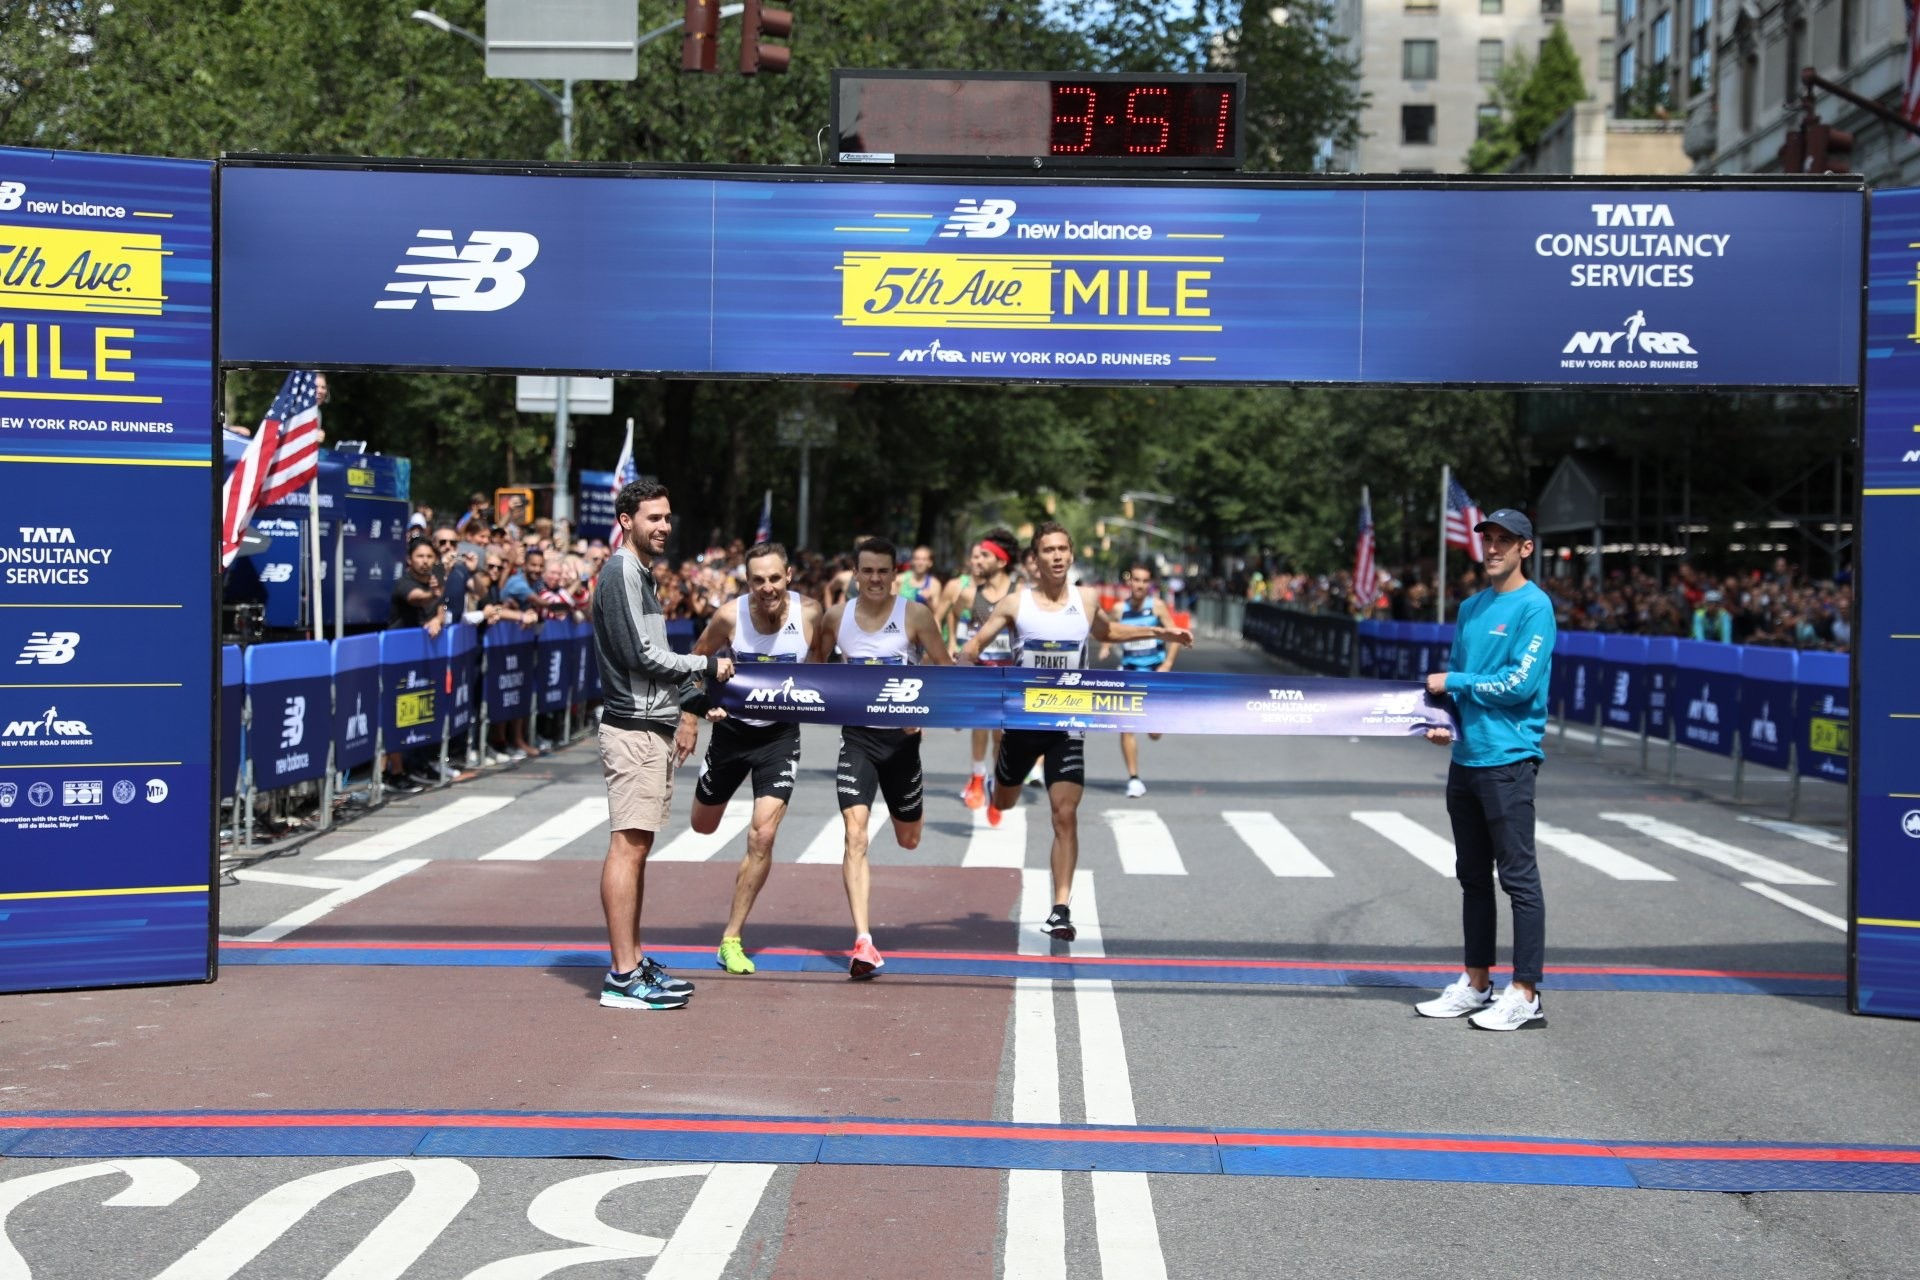 Nick Willis and Jenny Simpson are the New Balance Fifth Ave Mile winners again